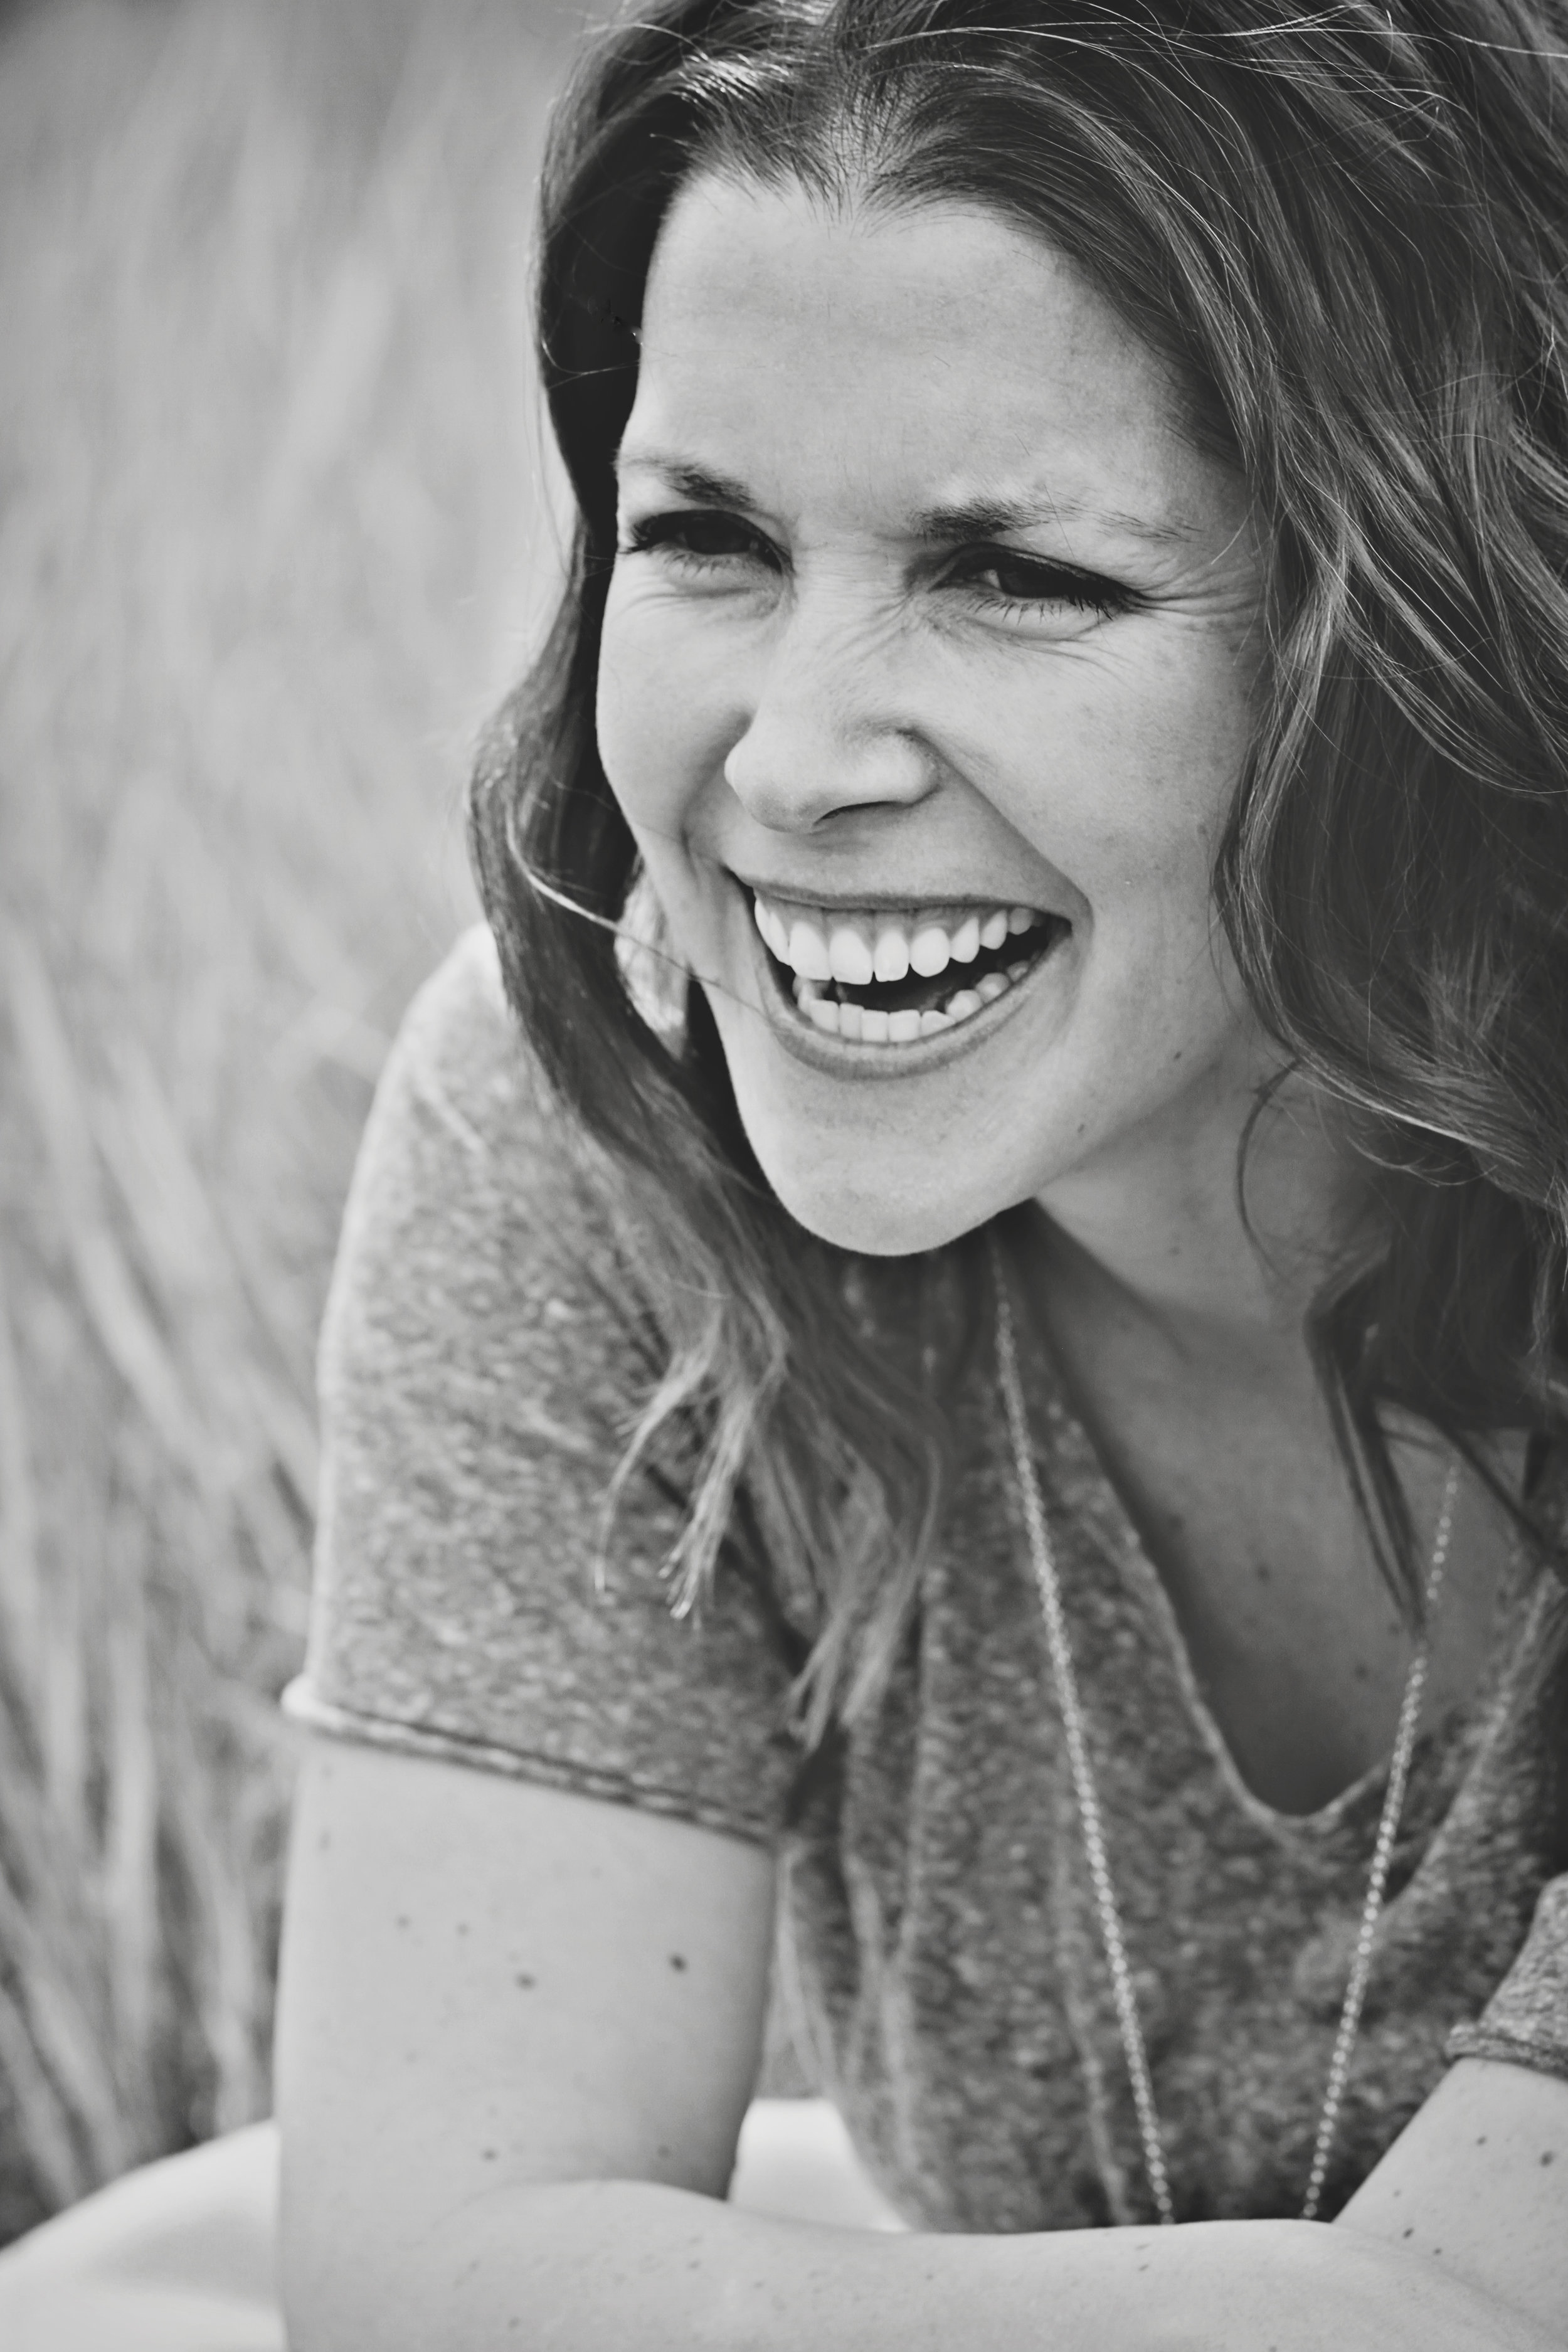 About the author... - Katie Blackburn is a wife, teacher, writer and mama of three who is still very much learning how to be a mama at all. She is saved by grace, cold brew coffee, and quiet mornings at her desk.You can find her online at justenoughbrave.com and @katiemblackburn on Instagram.